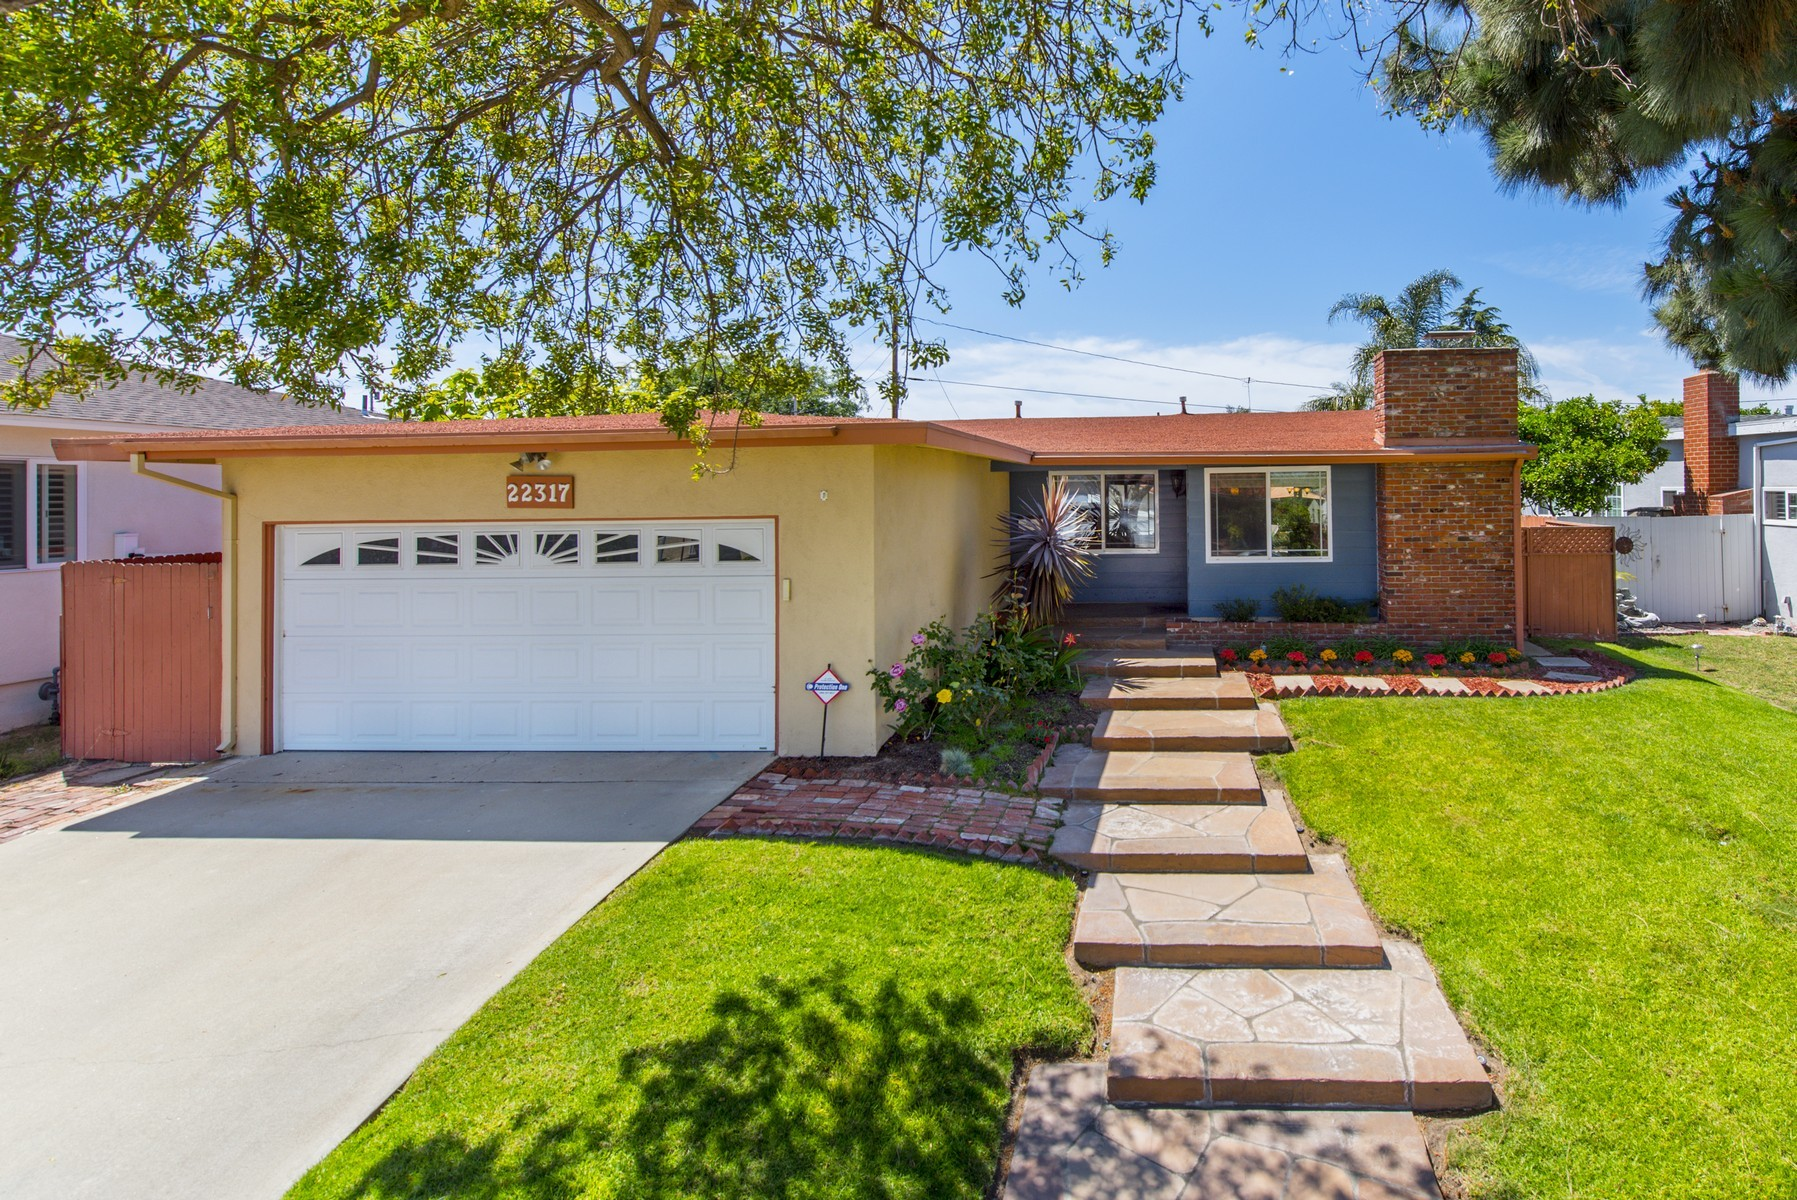 Single Family Home for Sale at 22317 Osage Ct 22317 Osage Court Torrance, California, 90505 United States